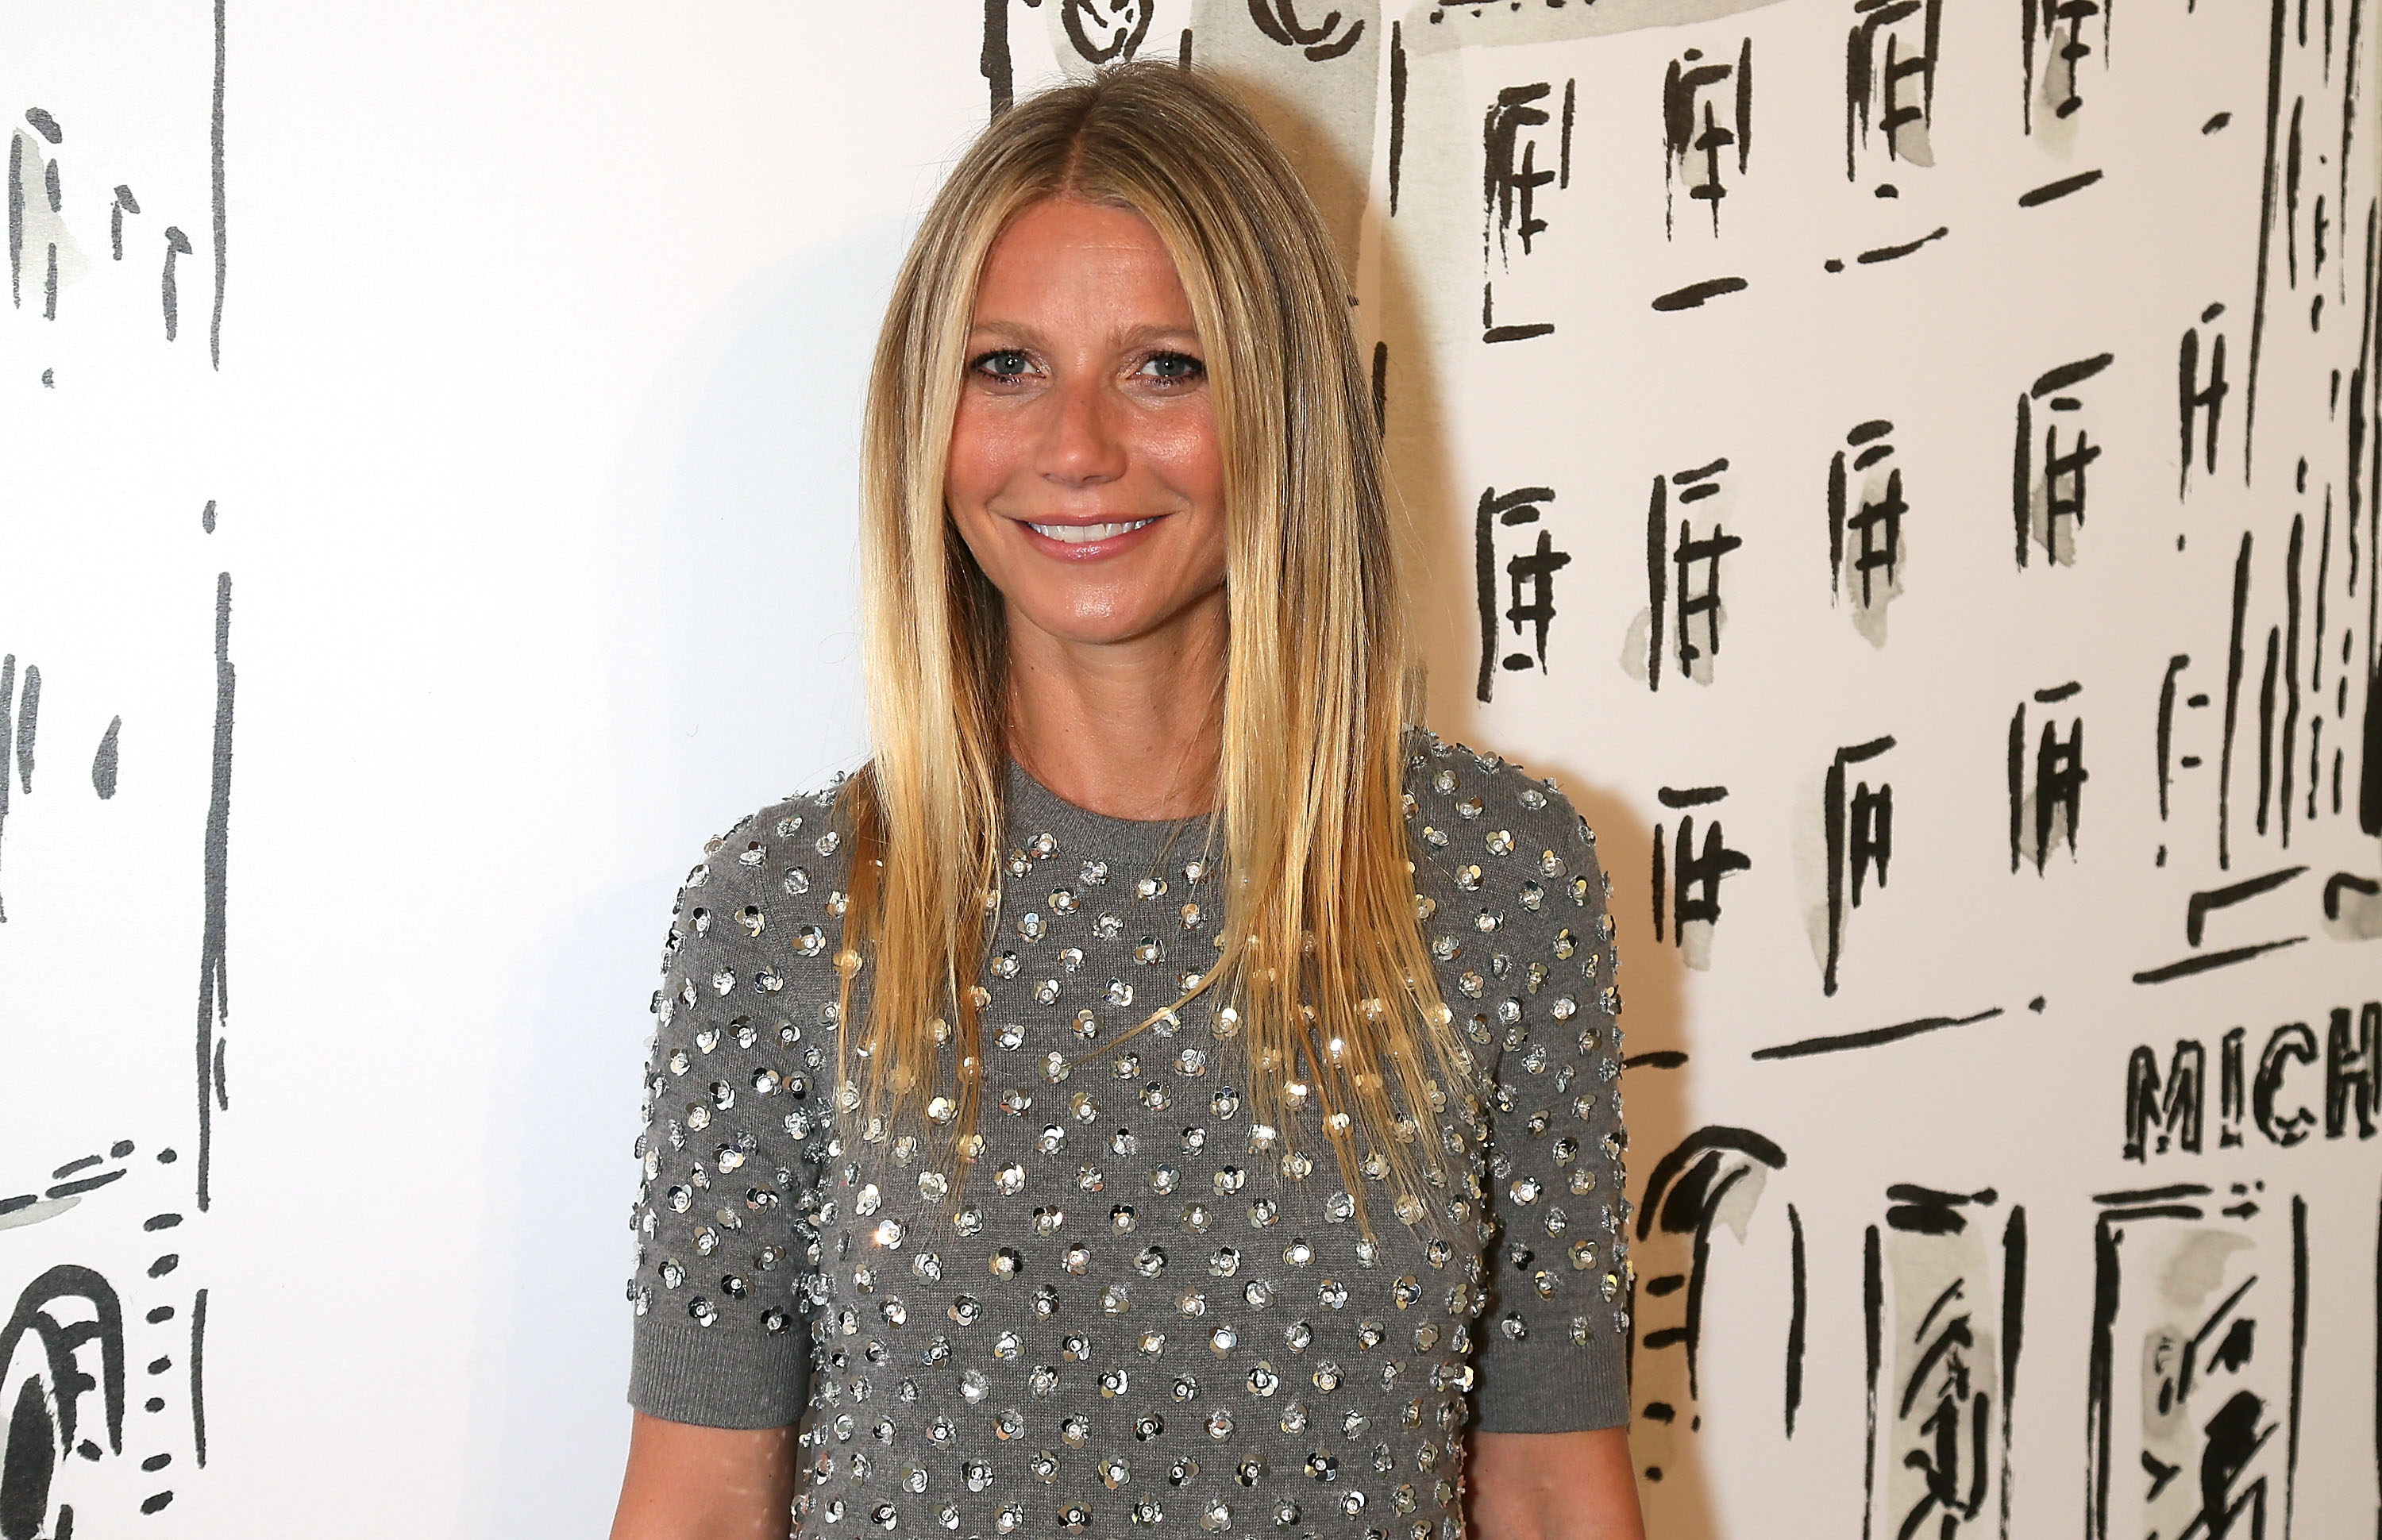 Gwyneth Paltrow attends a cocktail party hosted by Michael Kors in celebration of their new Regent Street Flagship Store opening, at the Michael Kors Flagship Store, on June 22, 2016 in London, England.